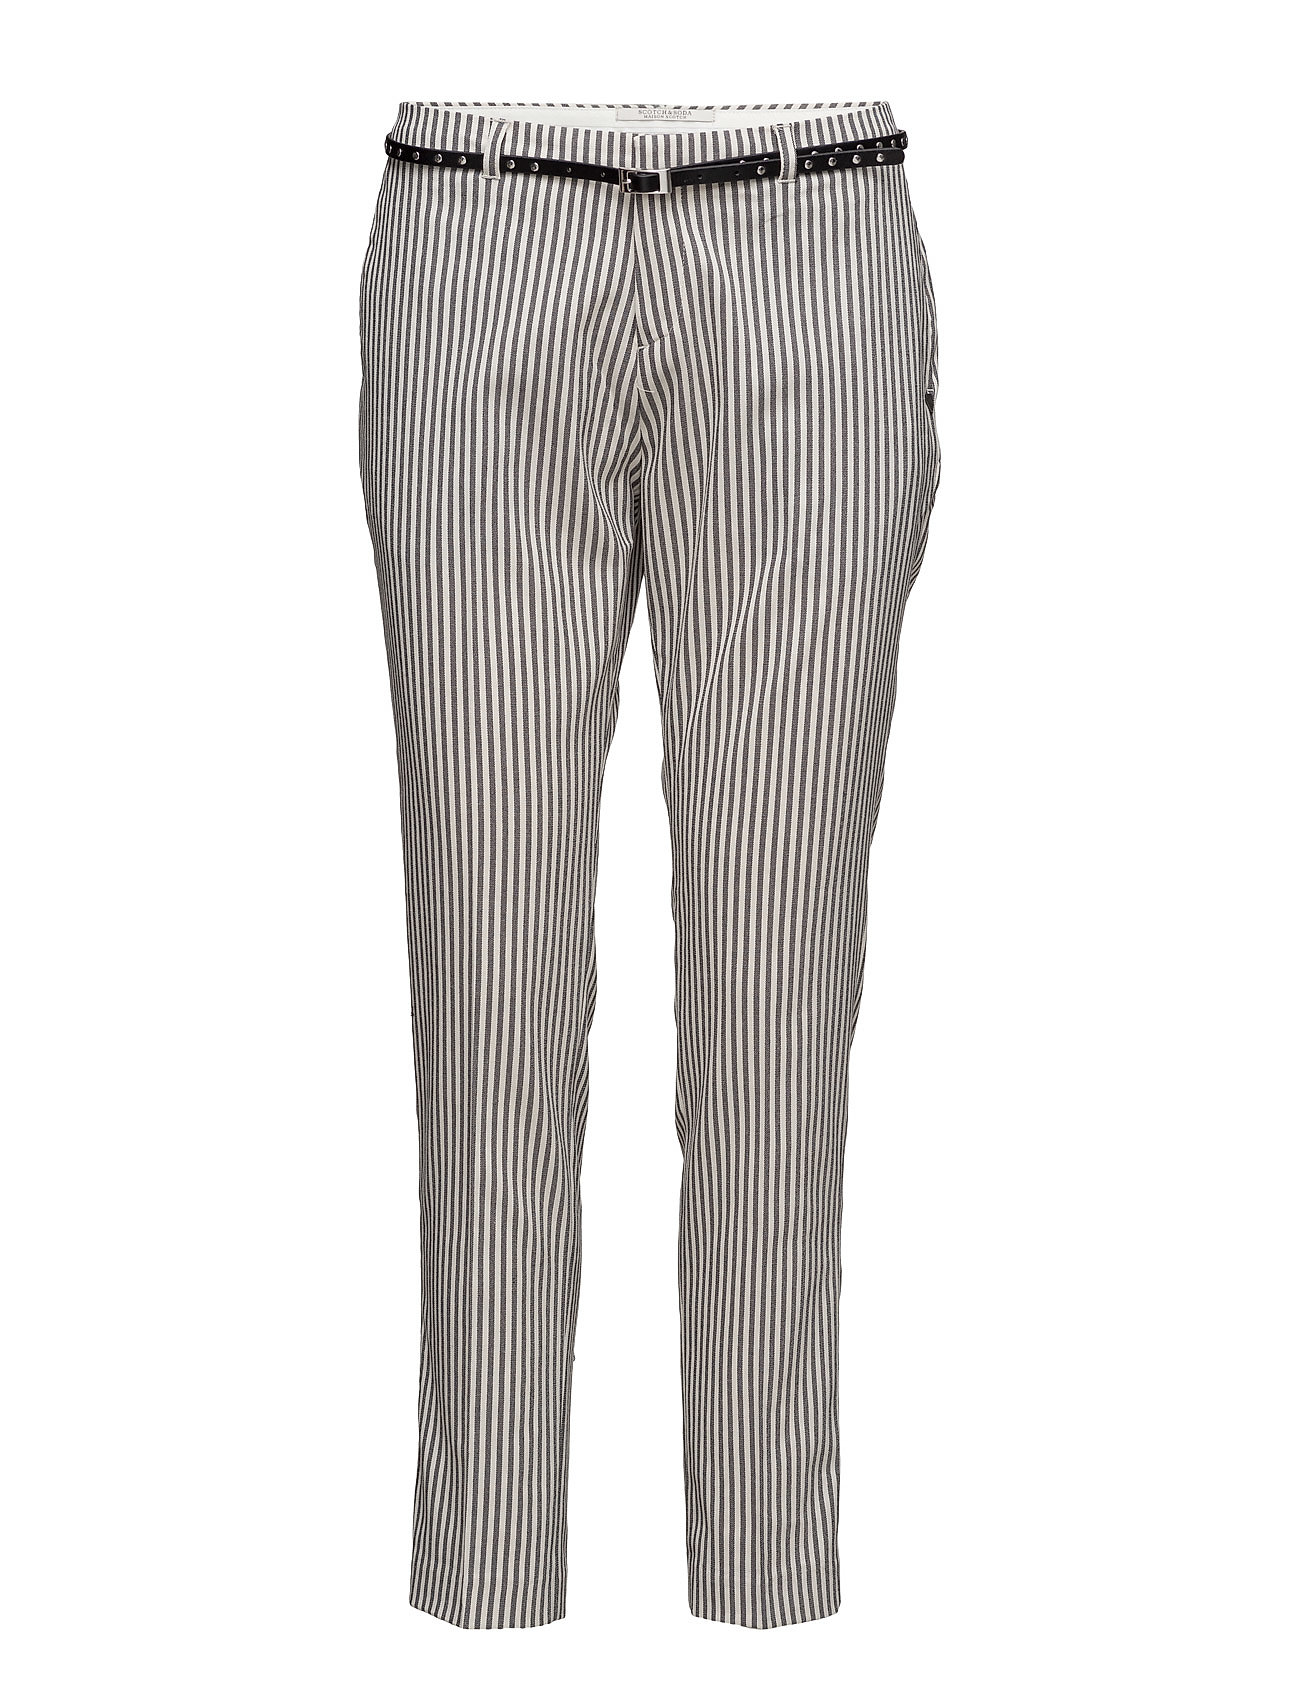 Classic Tailored Wool Blend Pant Old Scotch & Soda Bukser til Damer i Combo A